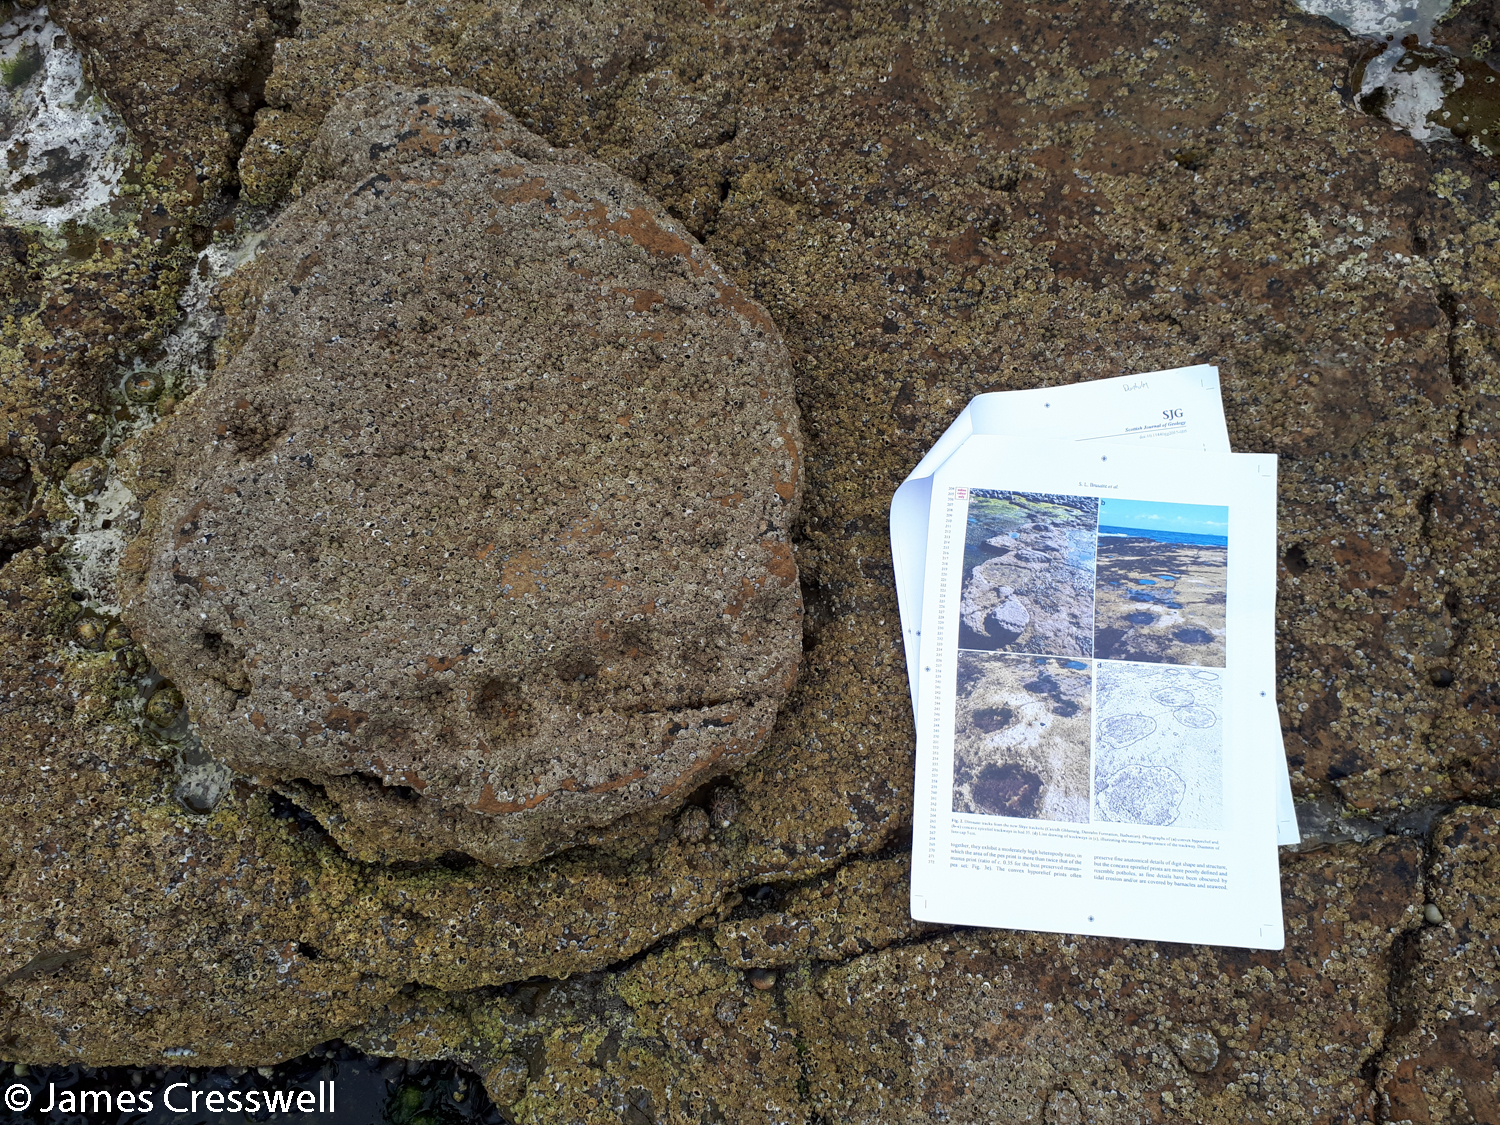 A sauropod track and scientific paper describing the trackway at Duntulm